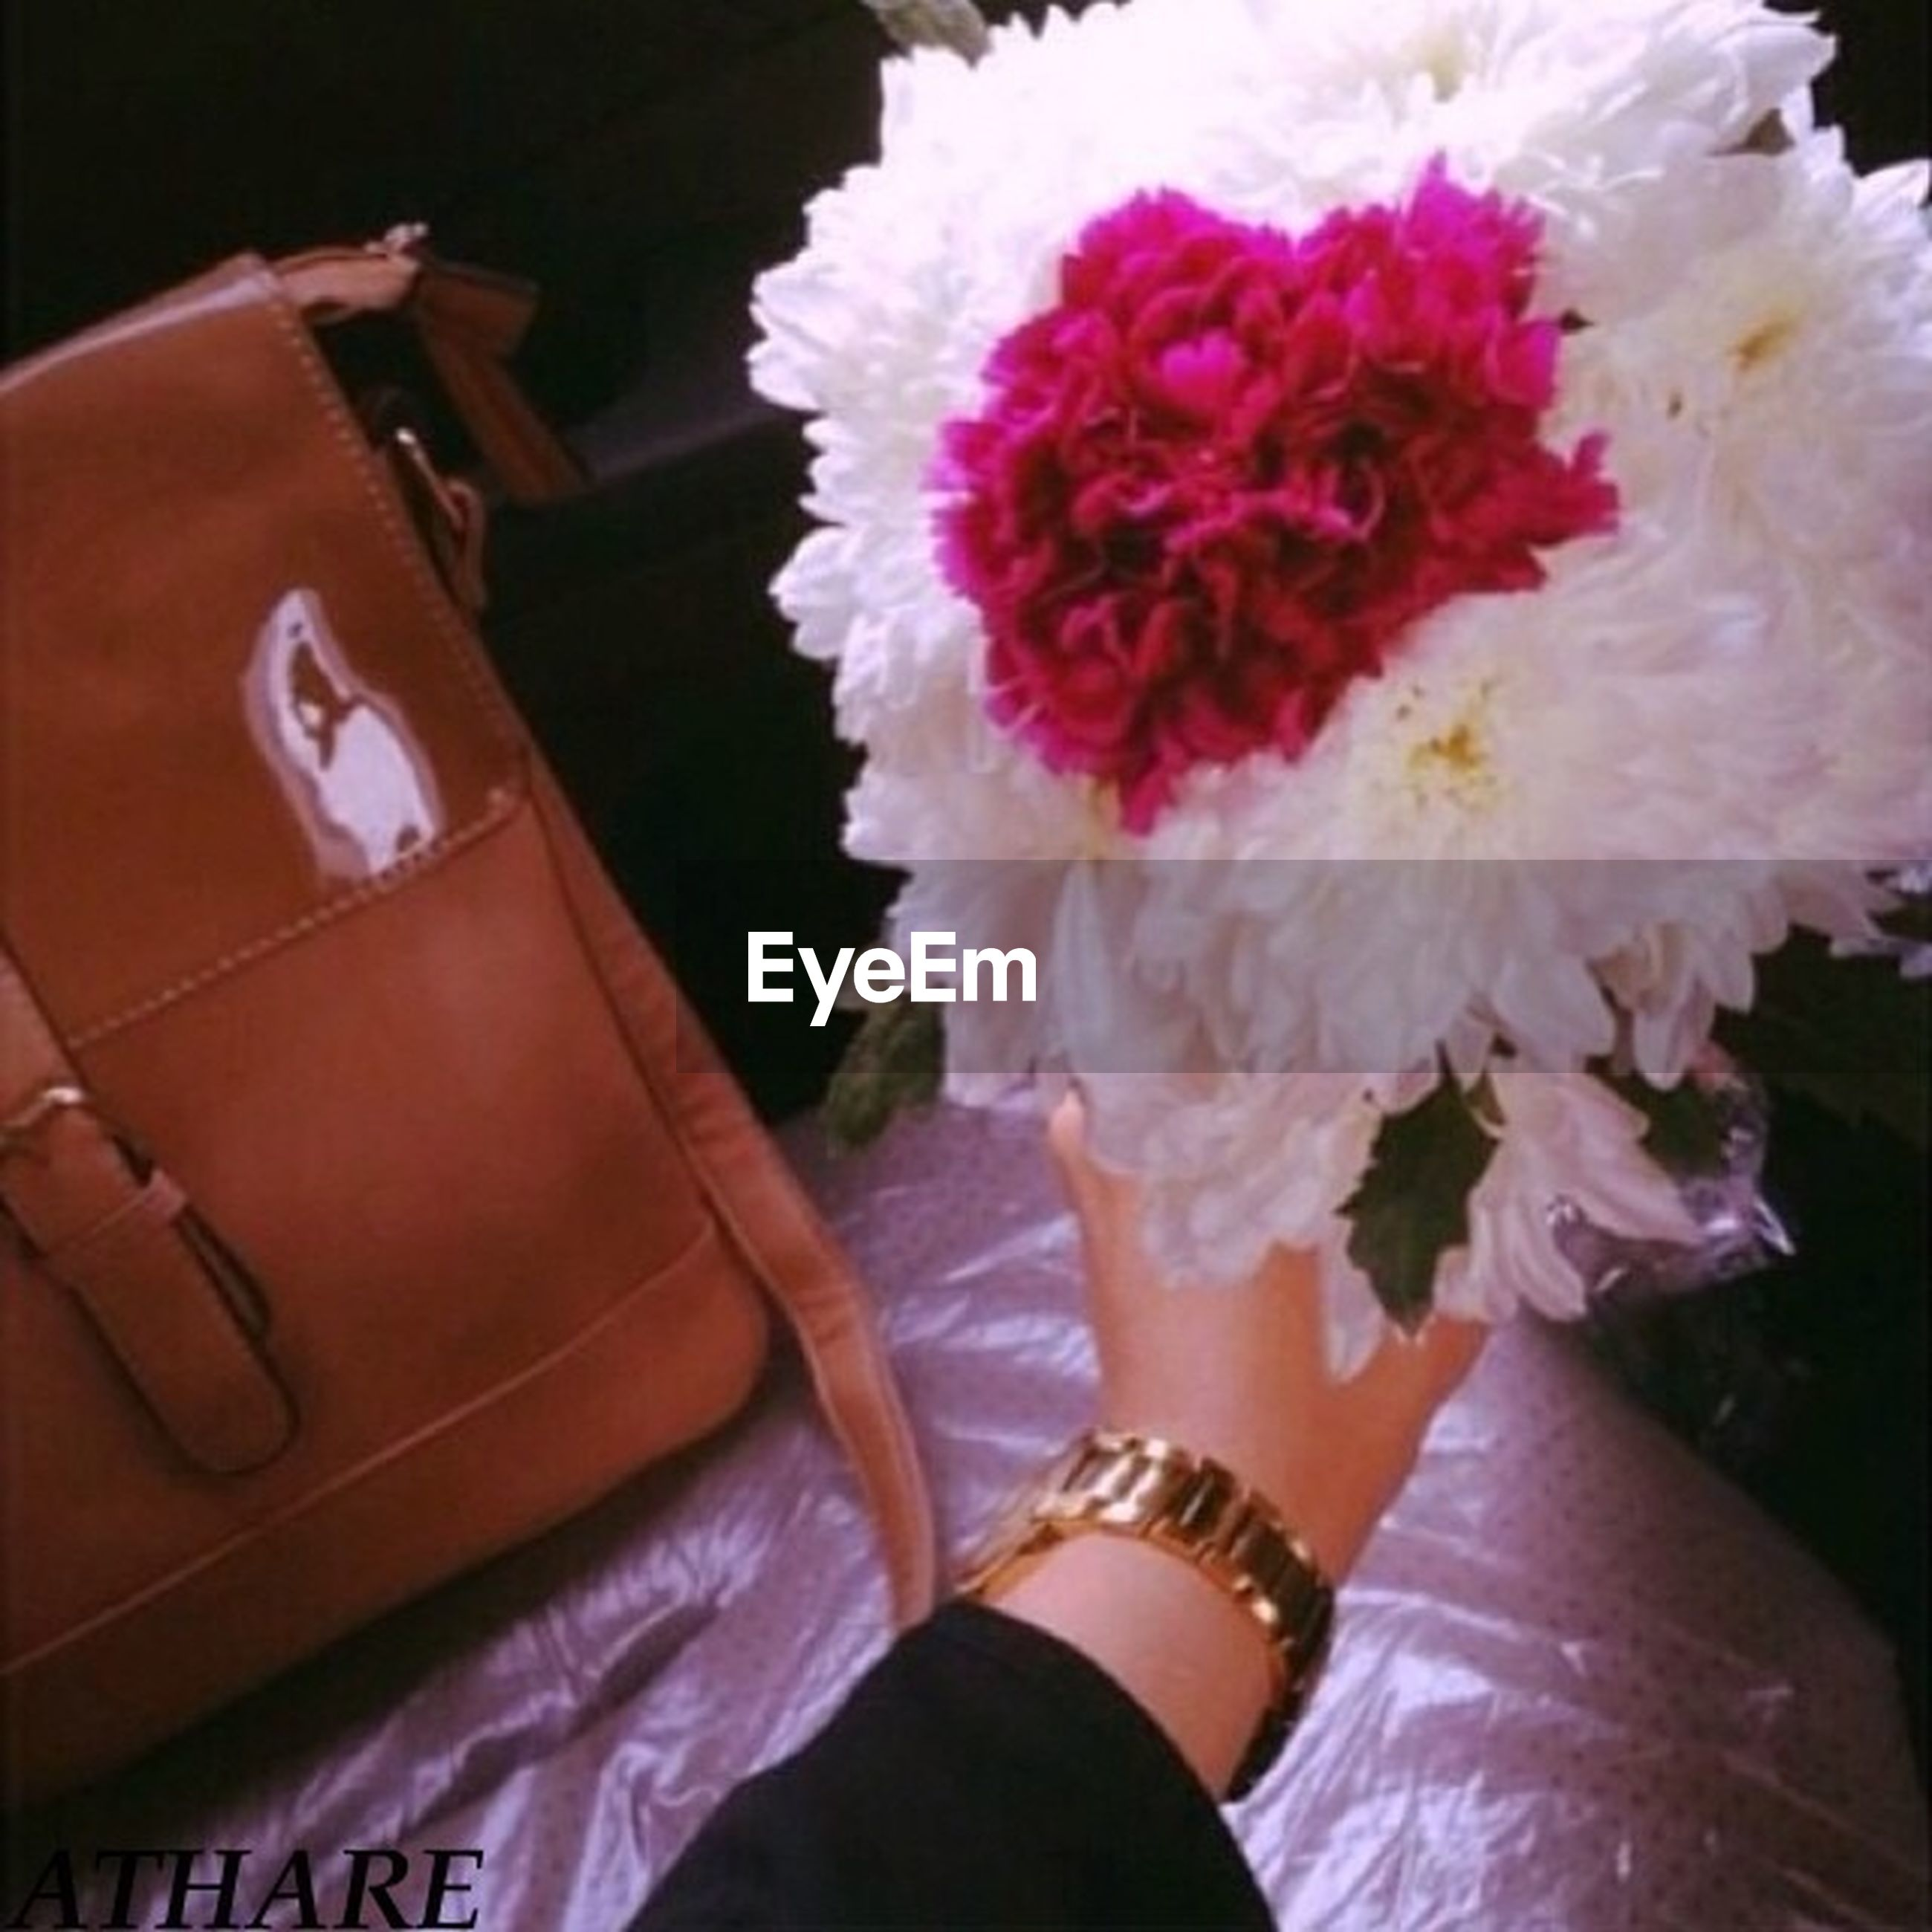 flower, holding, lifestyles, person, pink color, indoors, leisure activity, part of, close-up, high angle view, low section, petal, freshness, fashion, young women, casual clothing